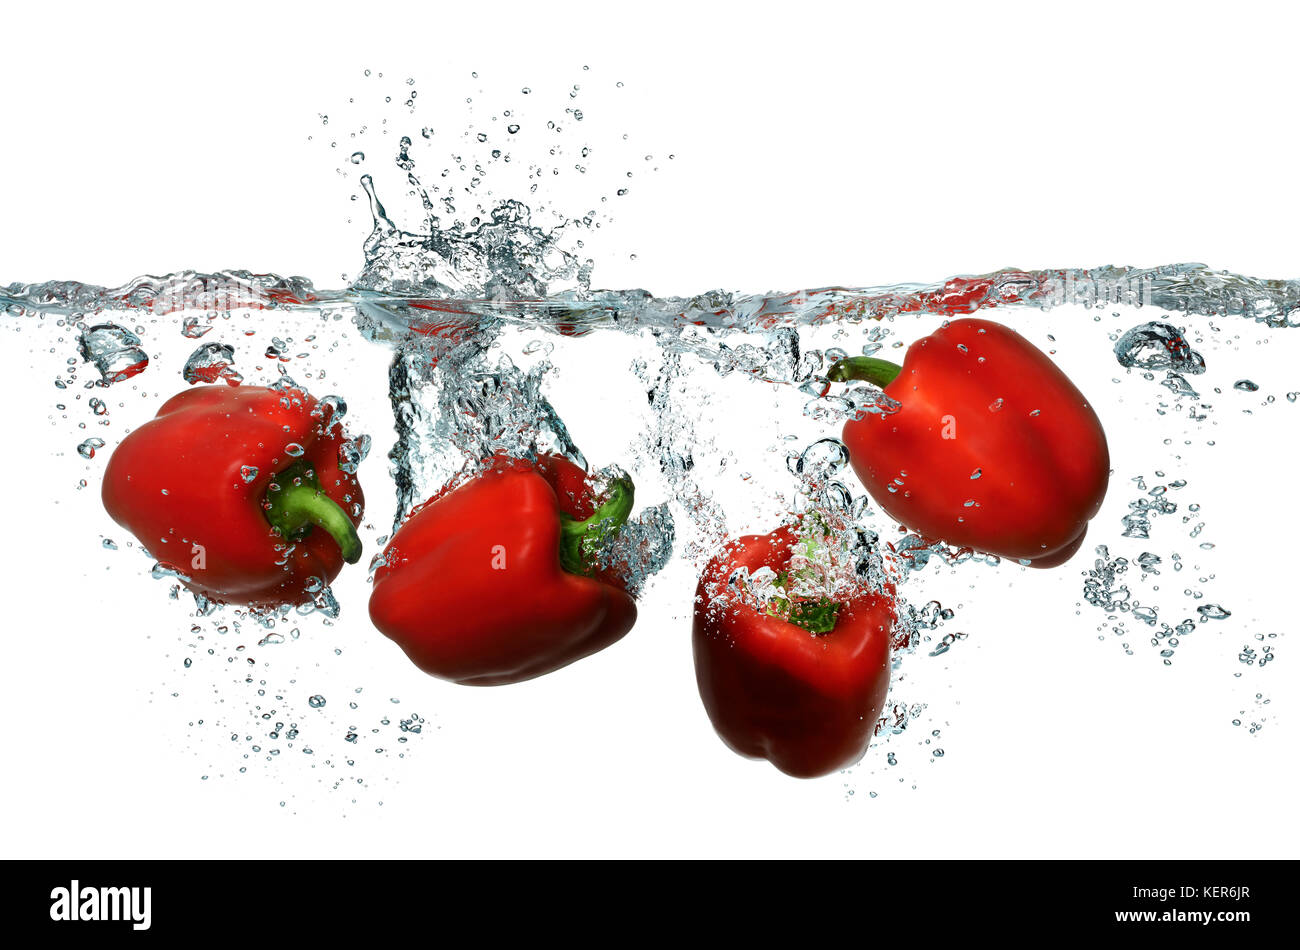 Bright red bell peppers splashing into fresh clean water - Stock Image